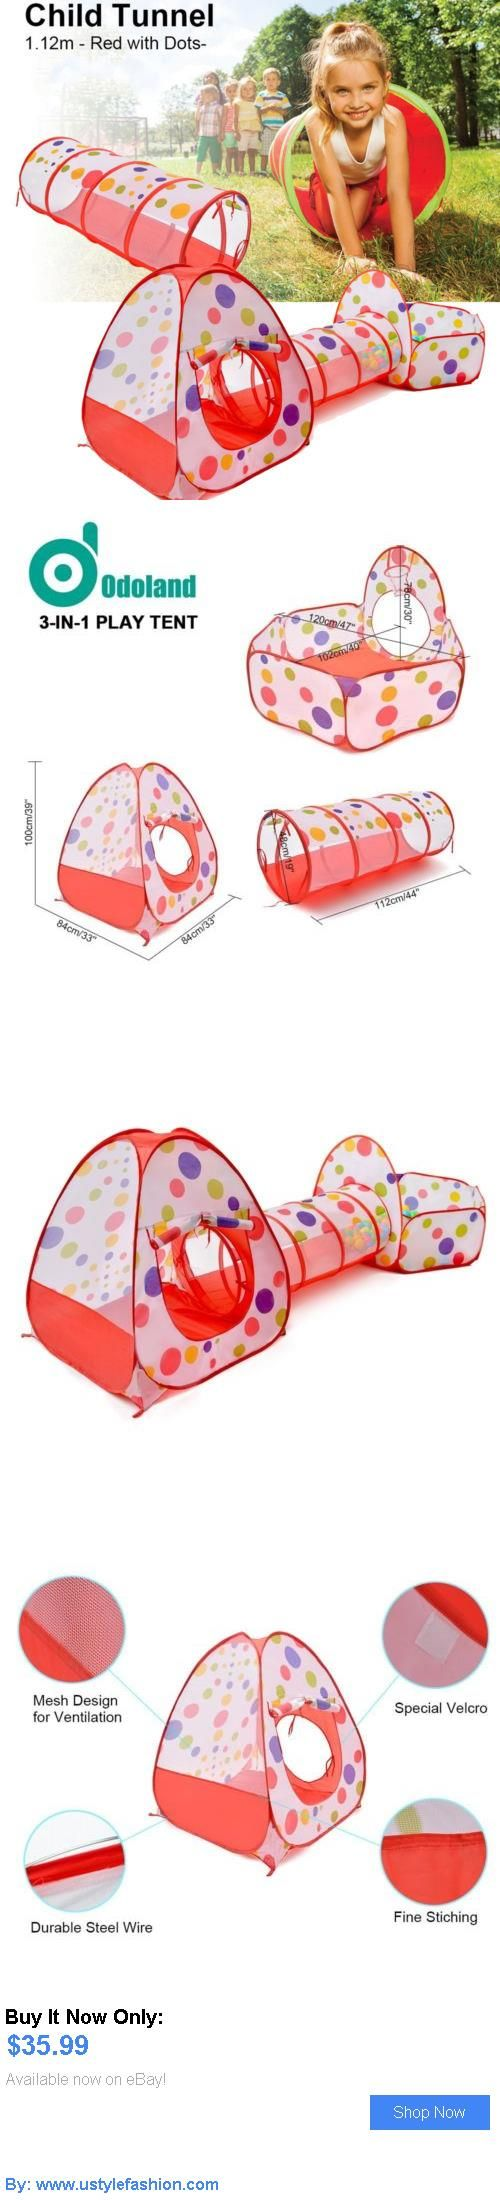 Baby play shades and tents: 3-In-1 Pop-Up Children Toddlers Play Tent Kids Playhouse Tunnel Set Game House BUY IT NOW ONLY: $35.99 #ustylefashionBabyplayshadesandtents OR #ustylefashion